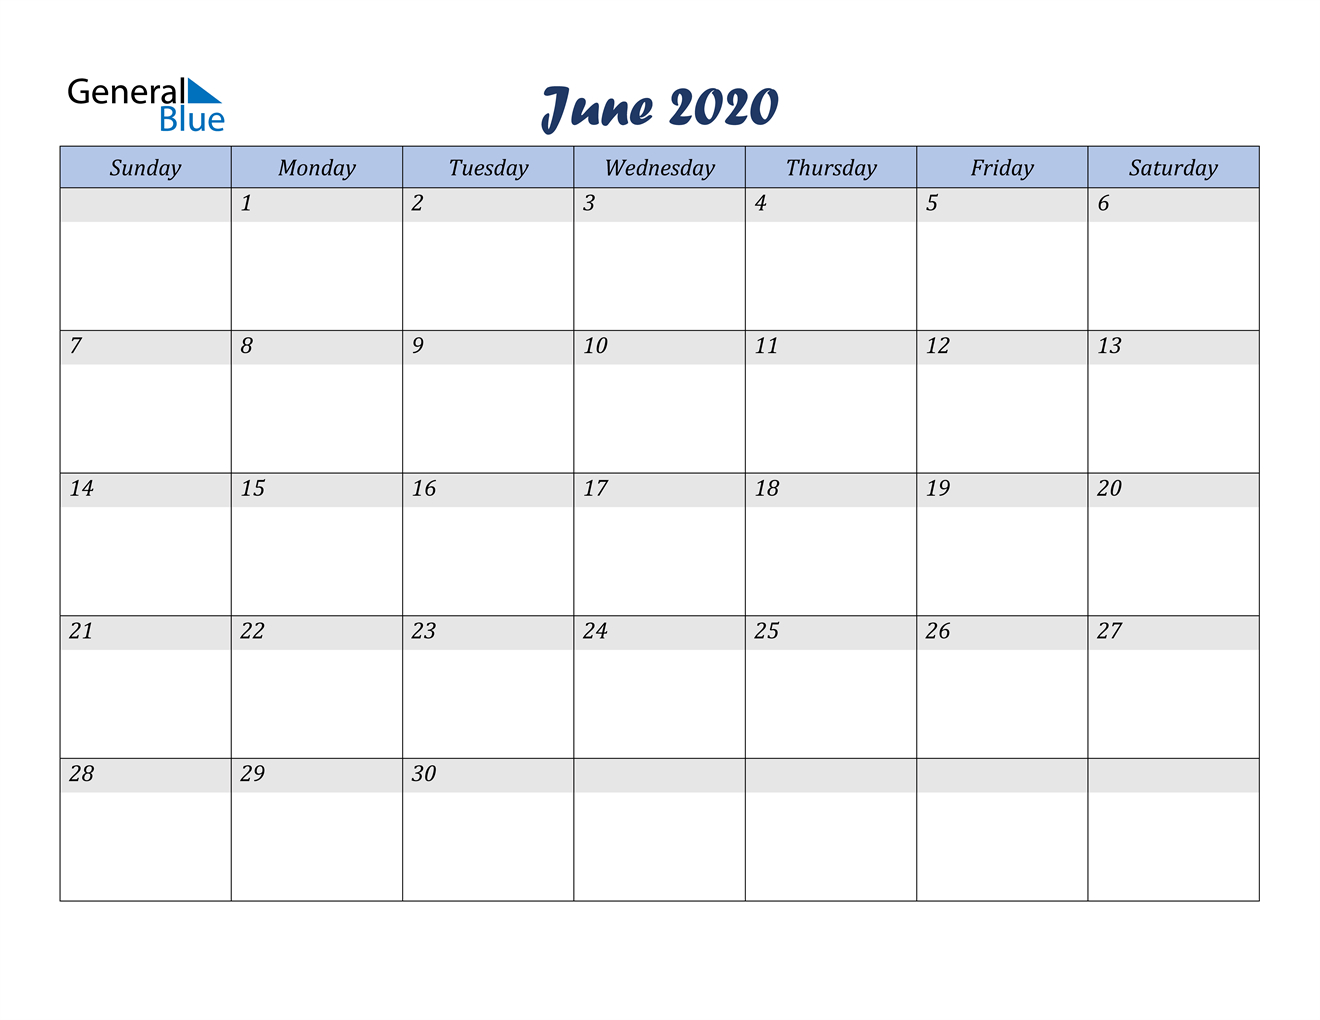 June 2020 Calendar - Pdf Word Excel Calendar That Can Be Edited